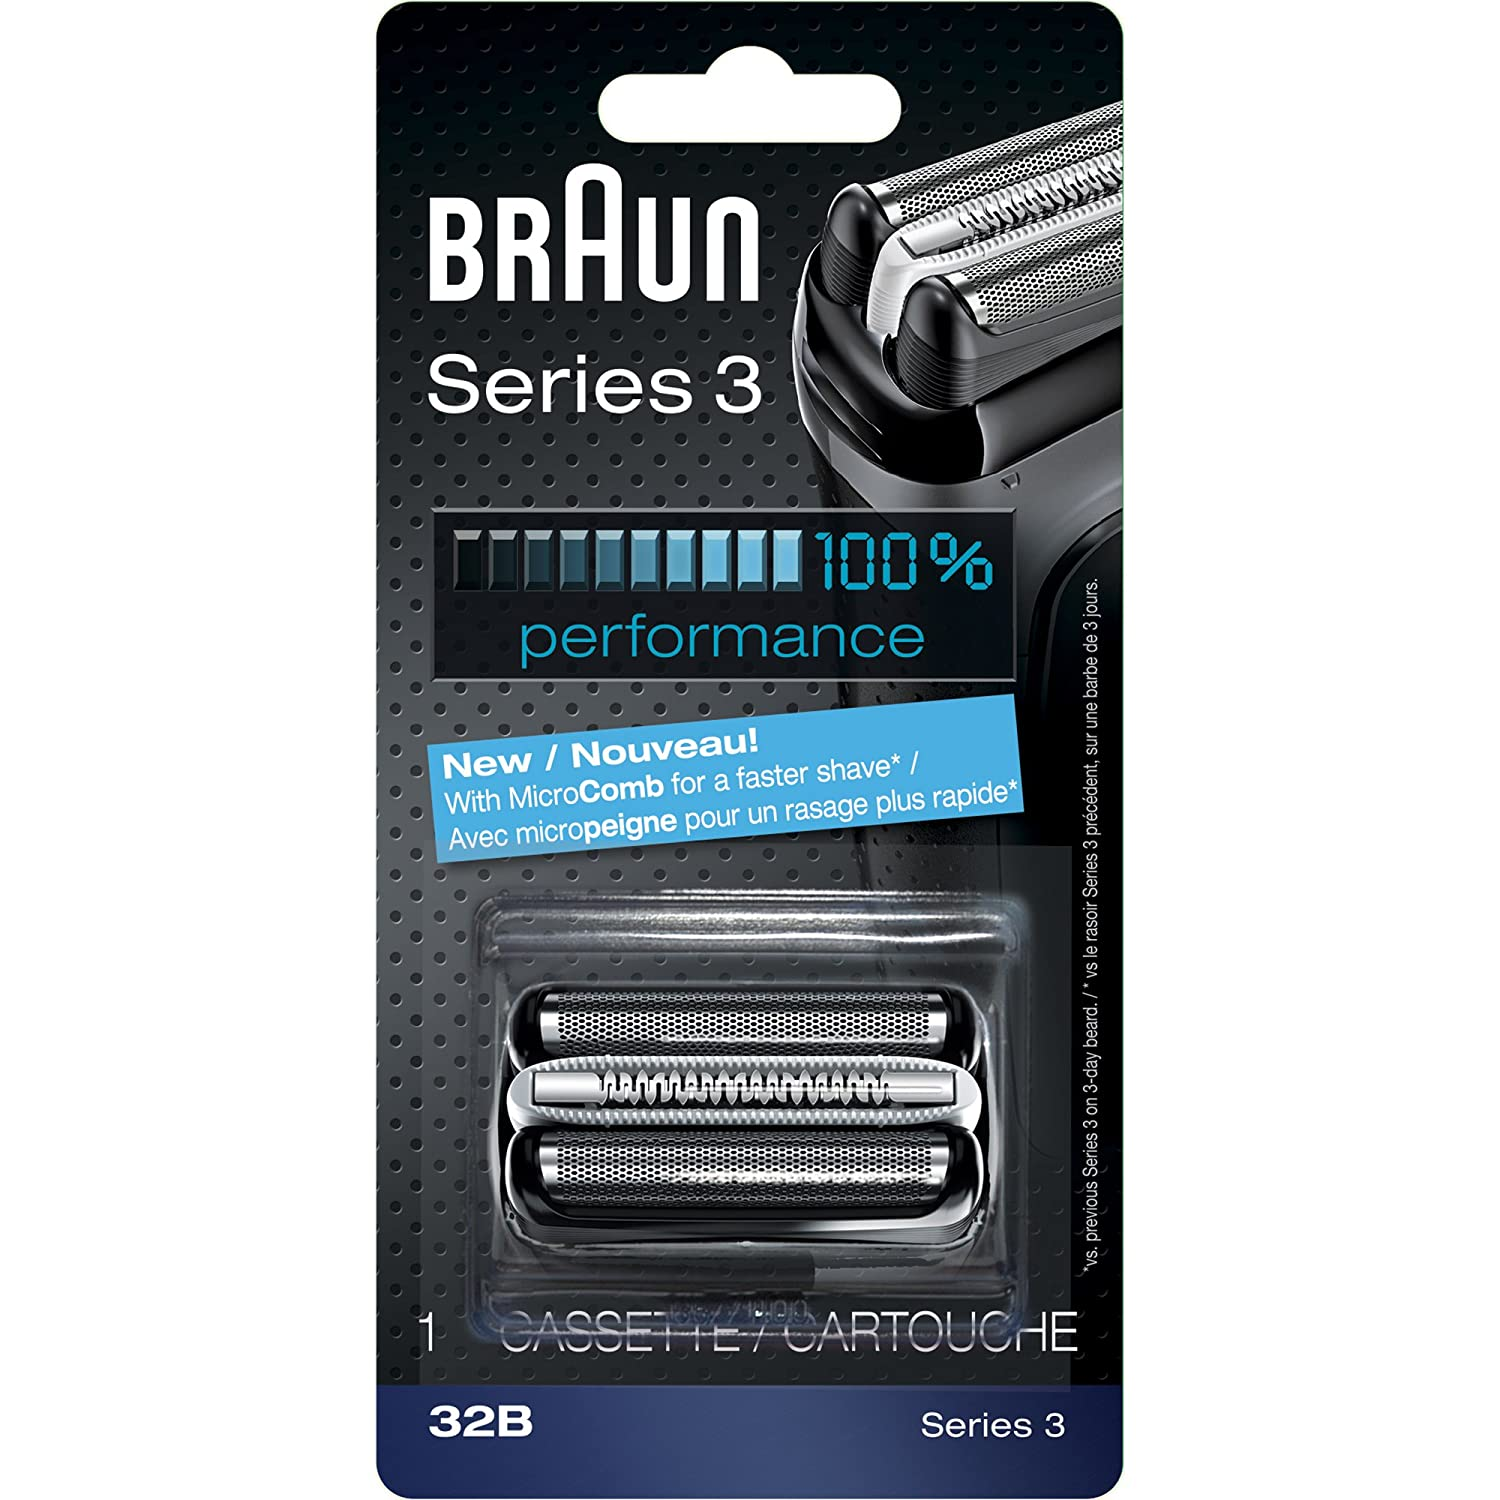 Braun Series 3 32B Foil & Cutter Replacement Head, Compatible with Models 300s, 310s, 320s, 340s, 350cc, 380s, 390cc, 3010s, 3040s, 3050cc